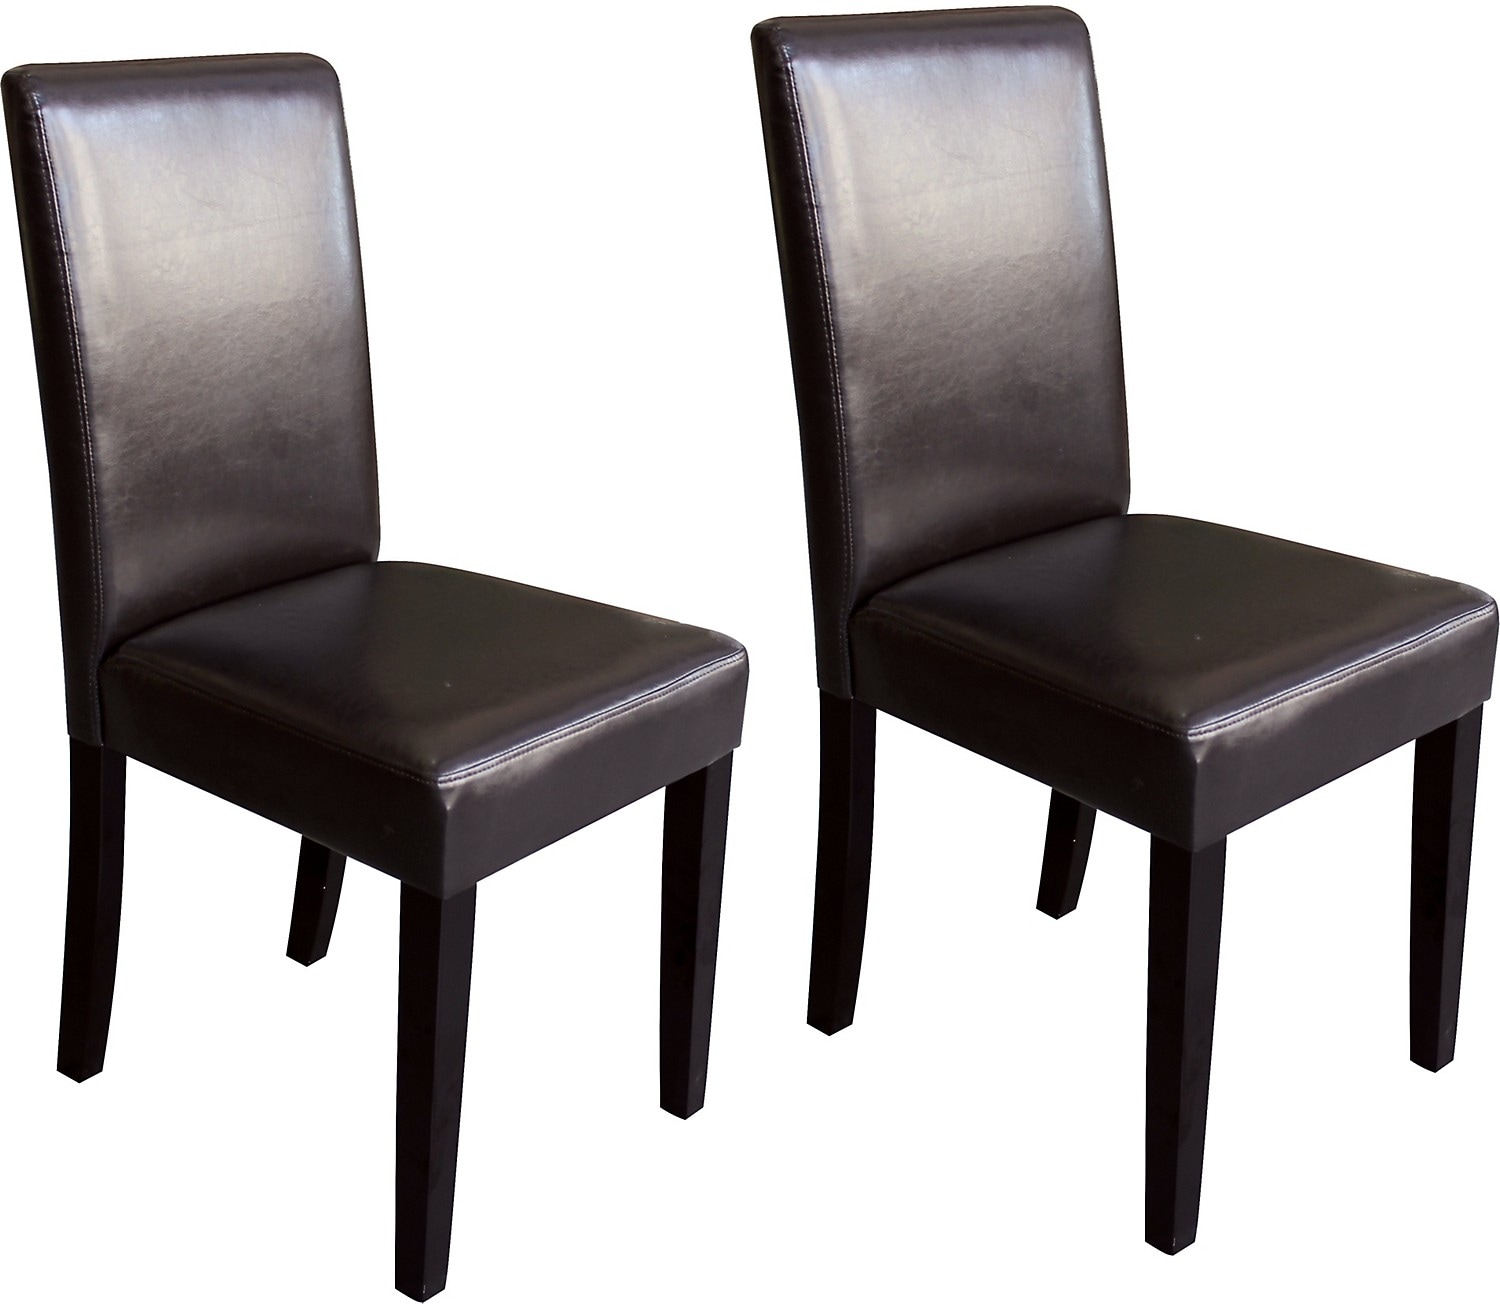 Image Result For Dining Chairs The Brick